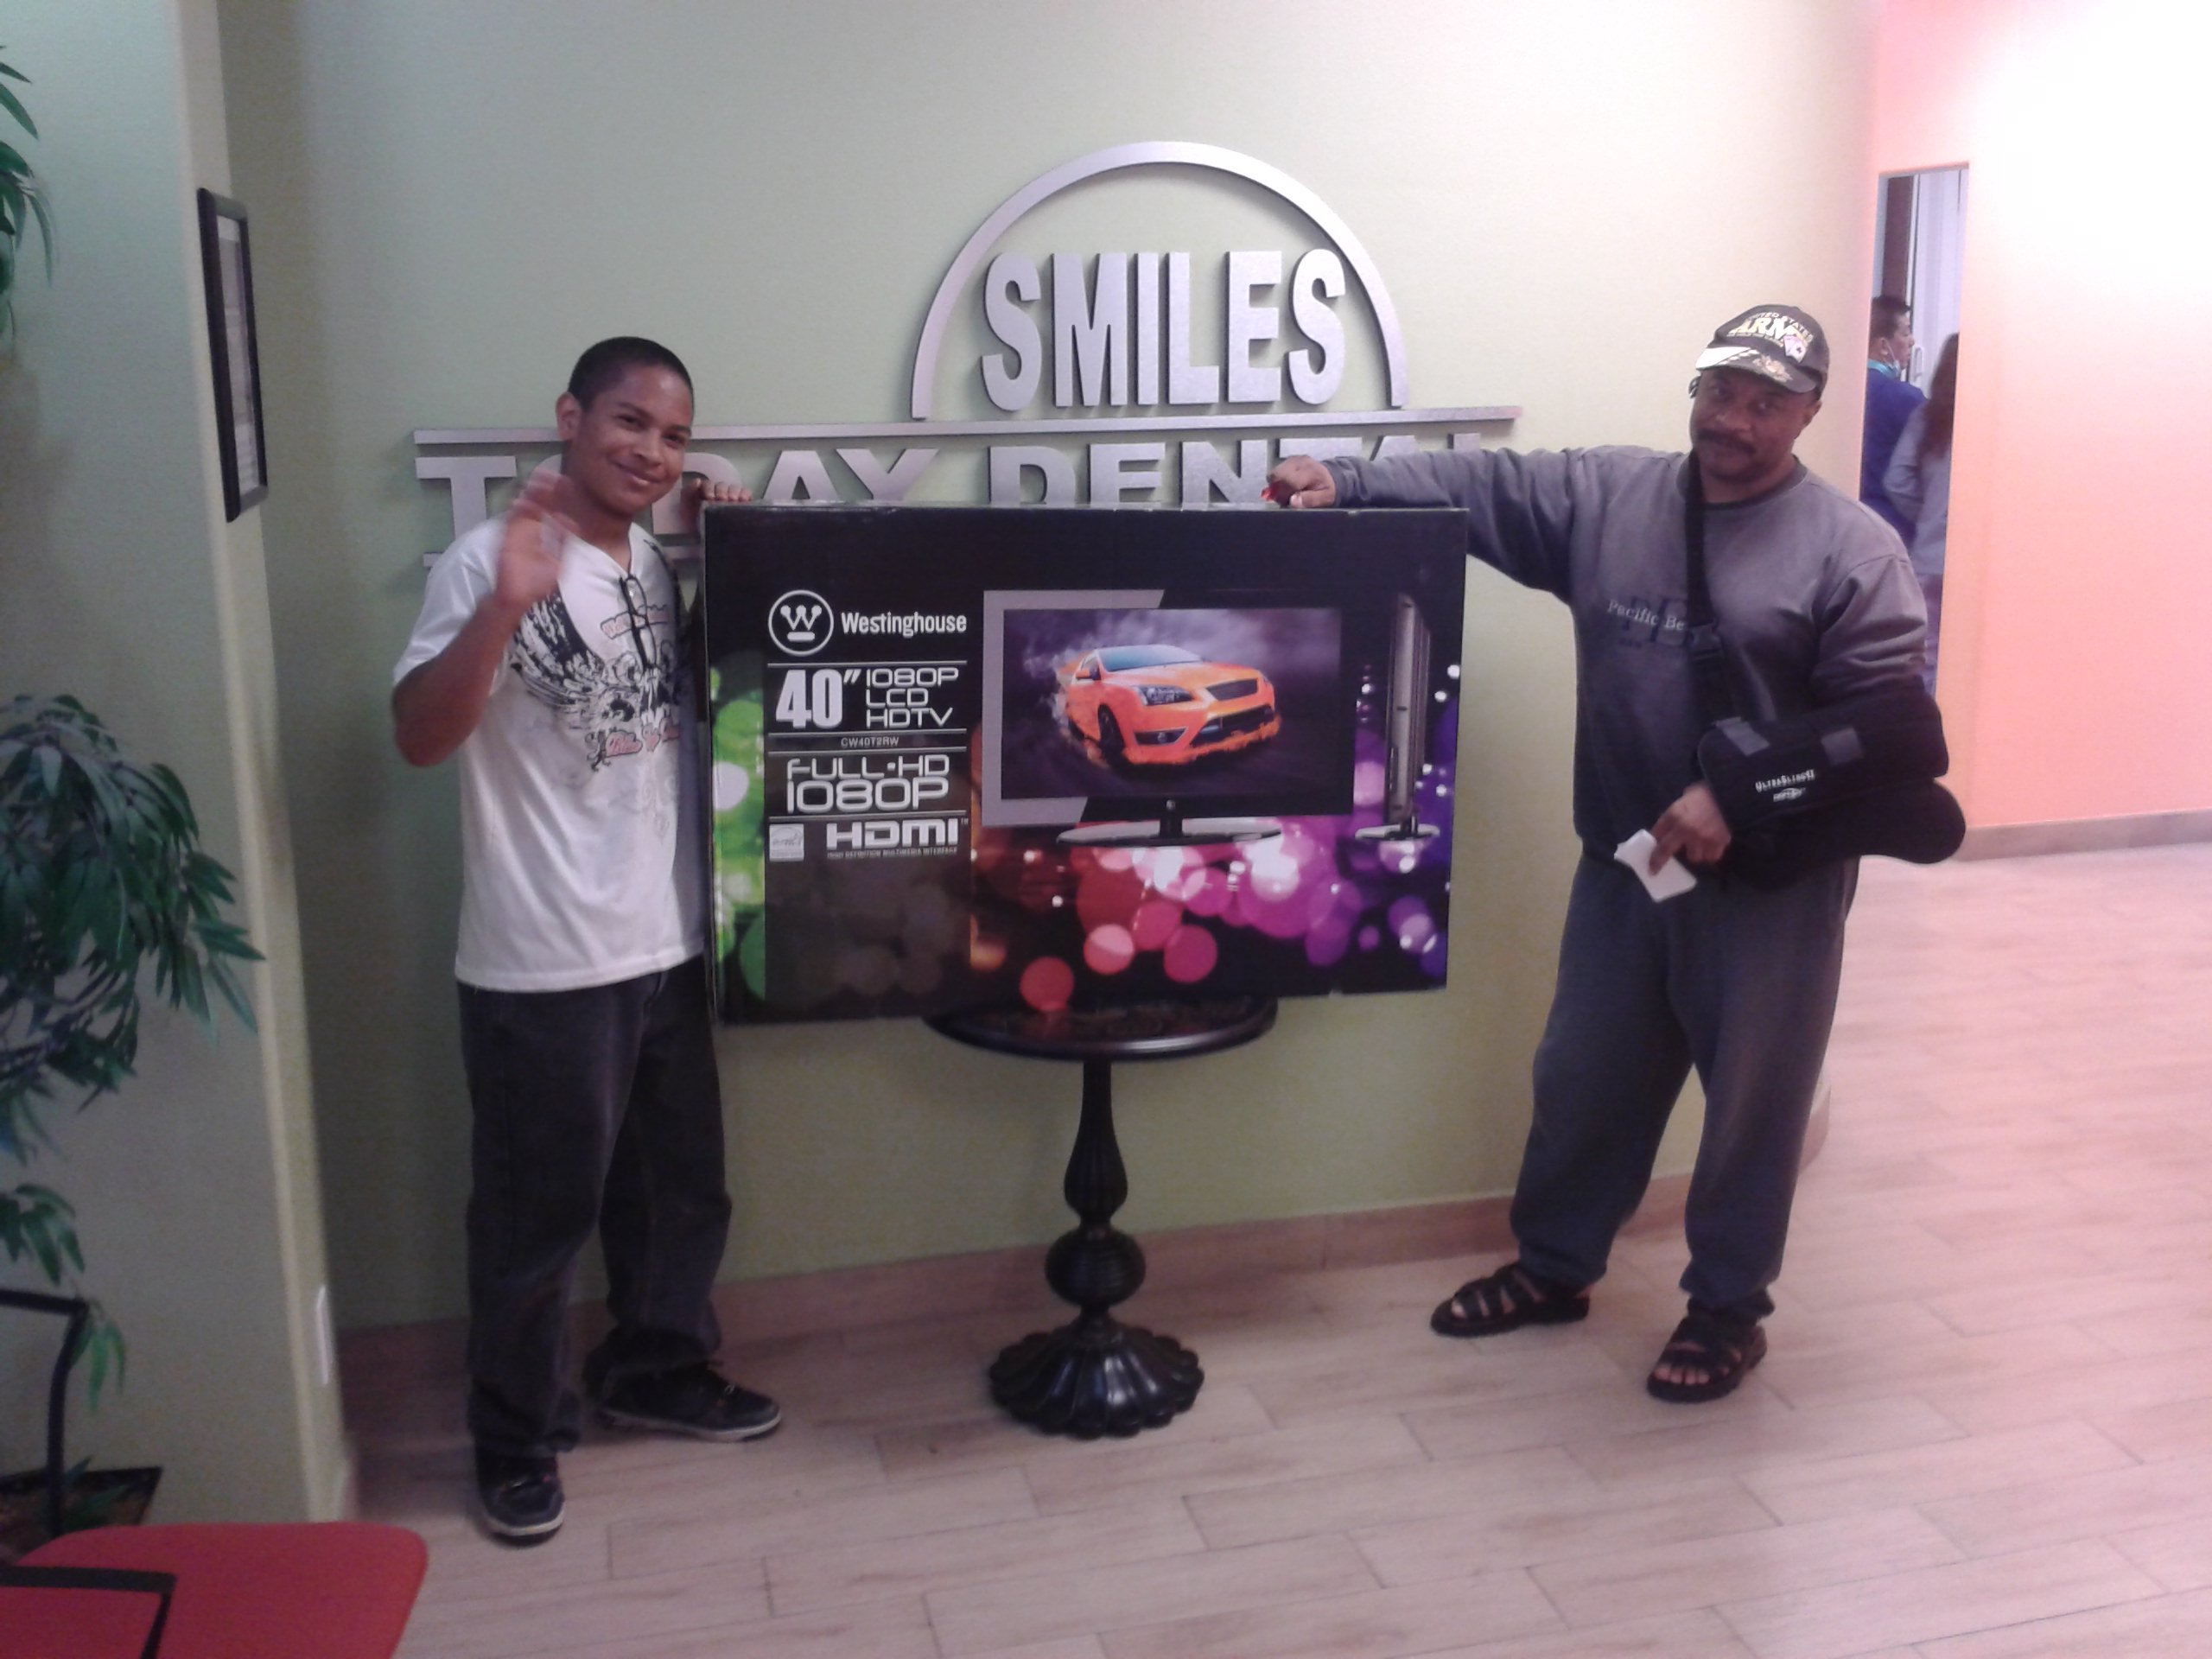 Smiles today contest winner of may 24th